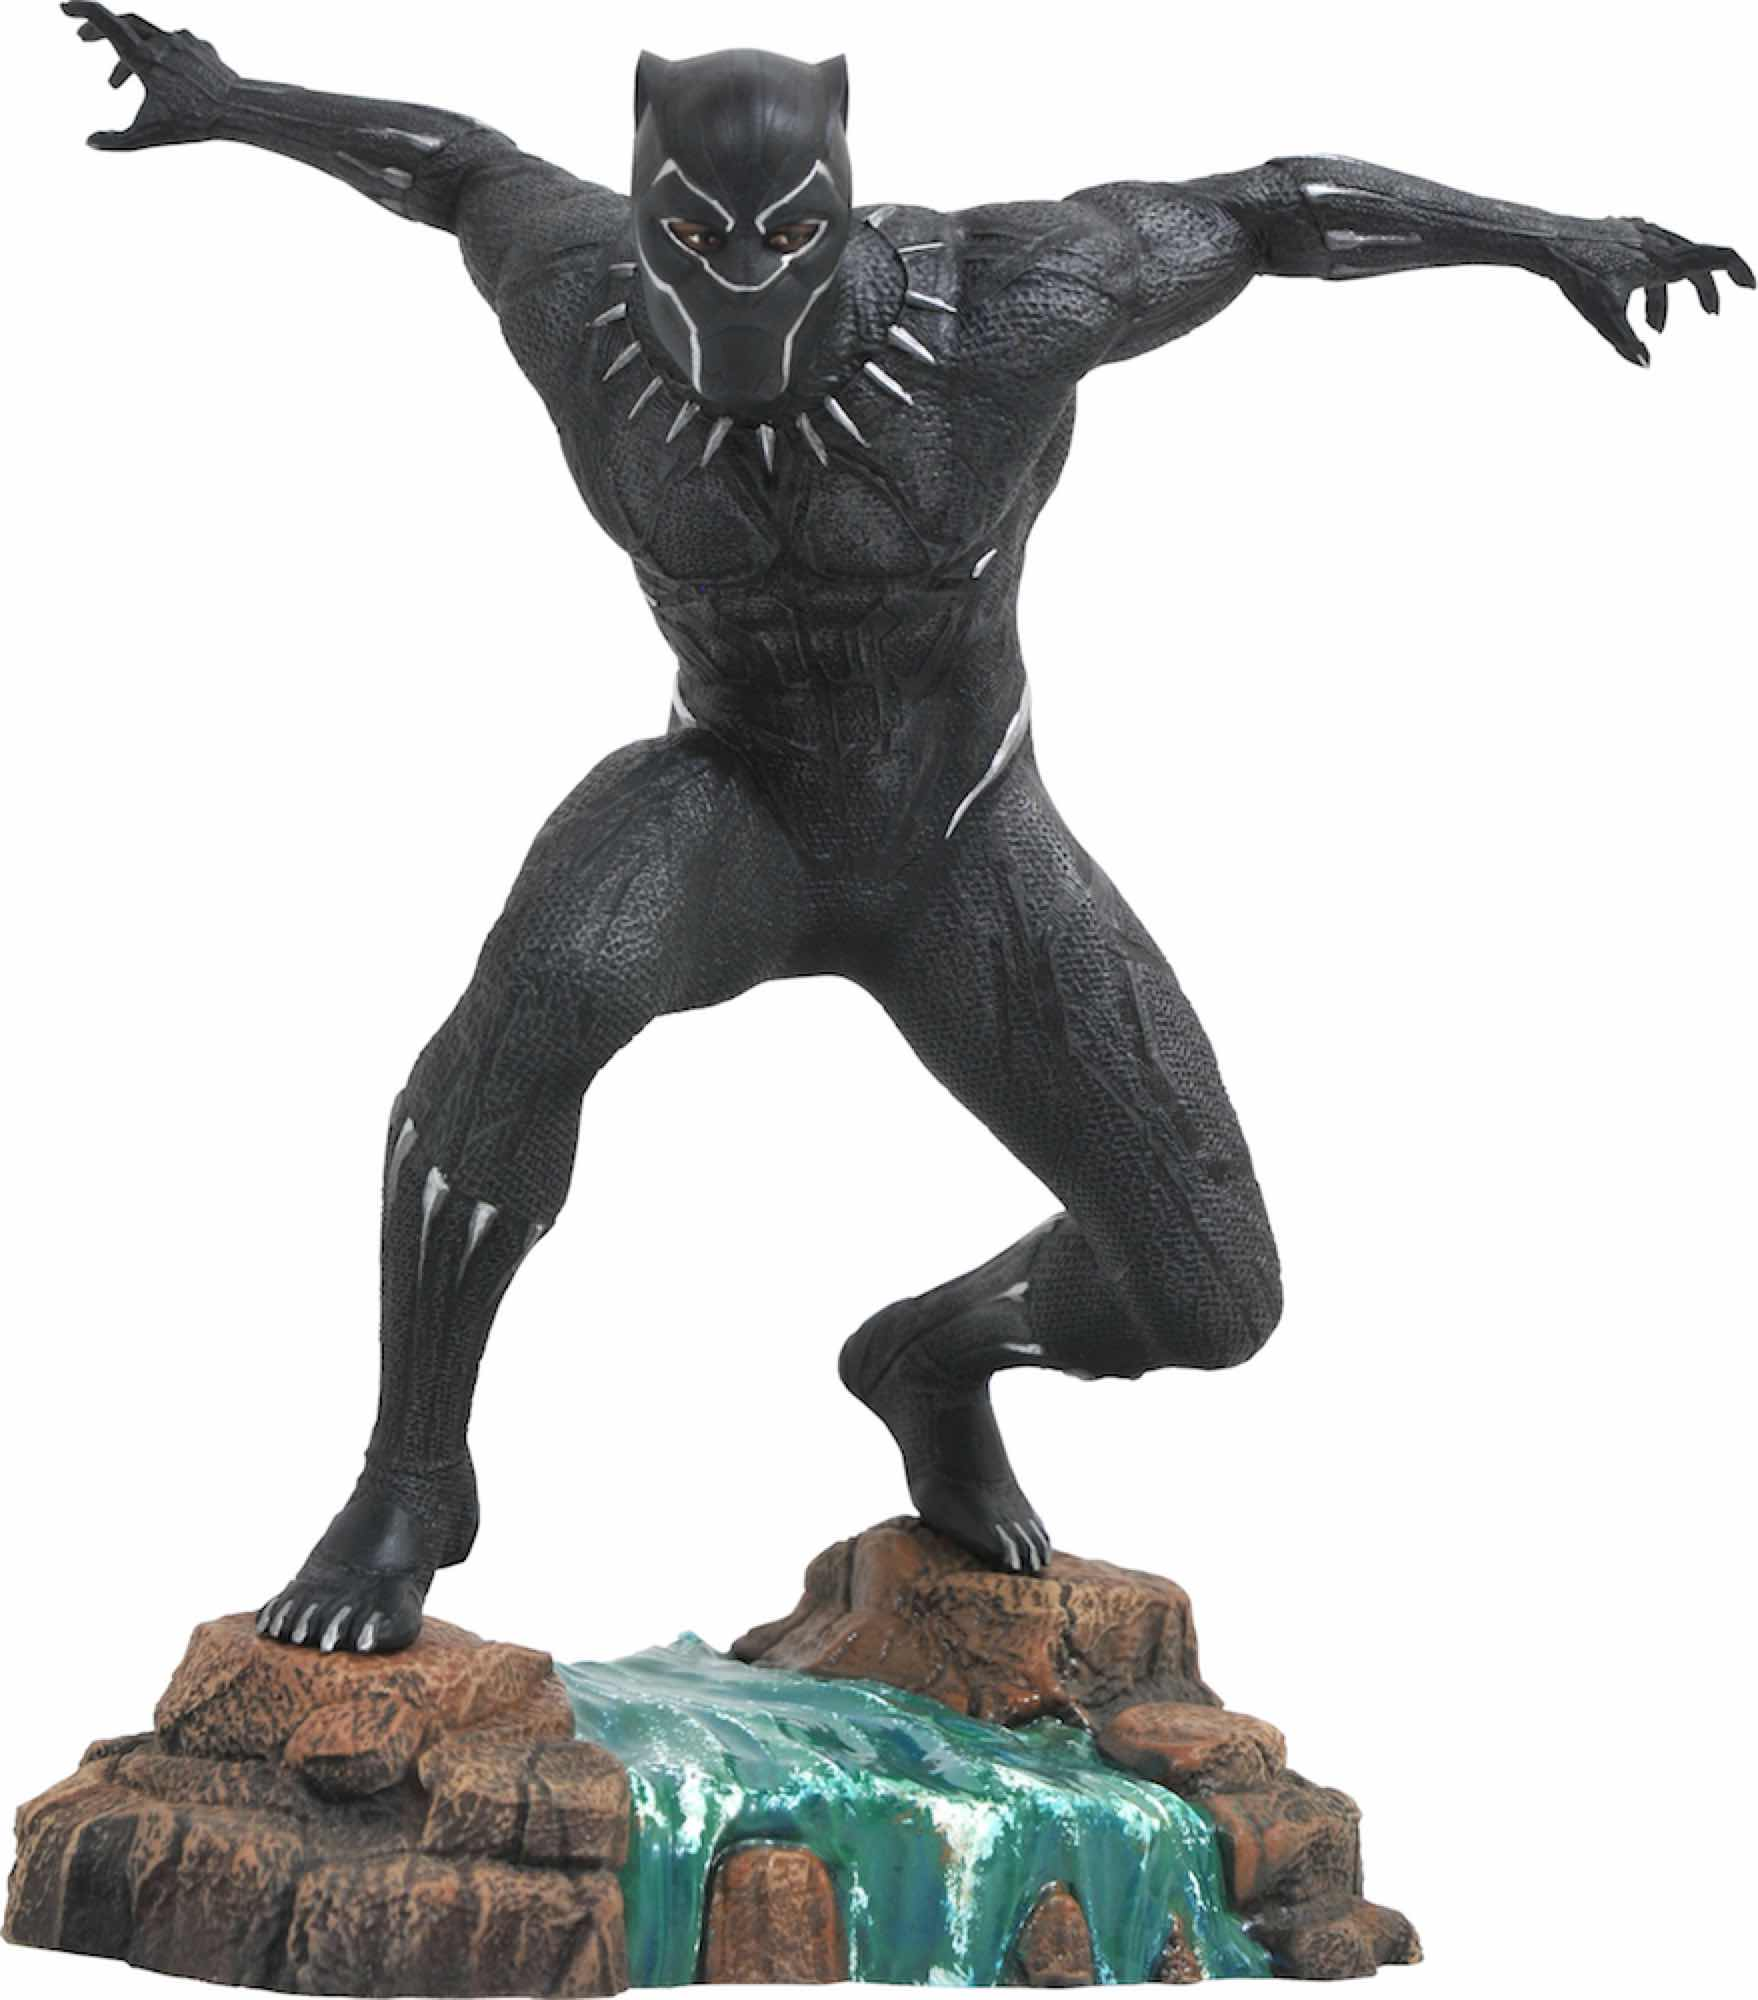 BLACK PANTHER FIGURA 22.8 CM PVC DIORAMA MARVEL GALLERY BLACK PANTHER MOVIE